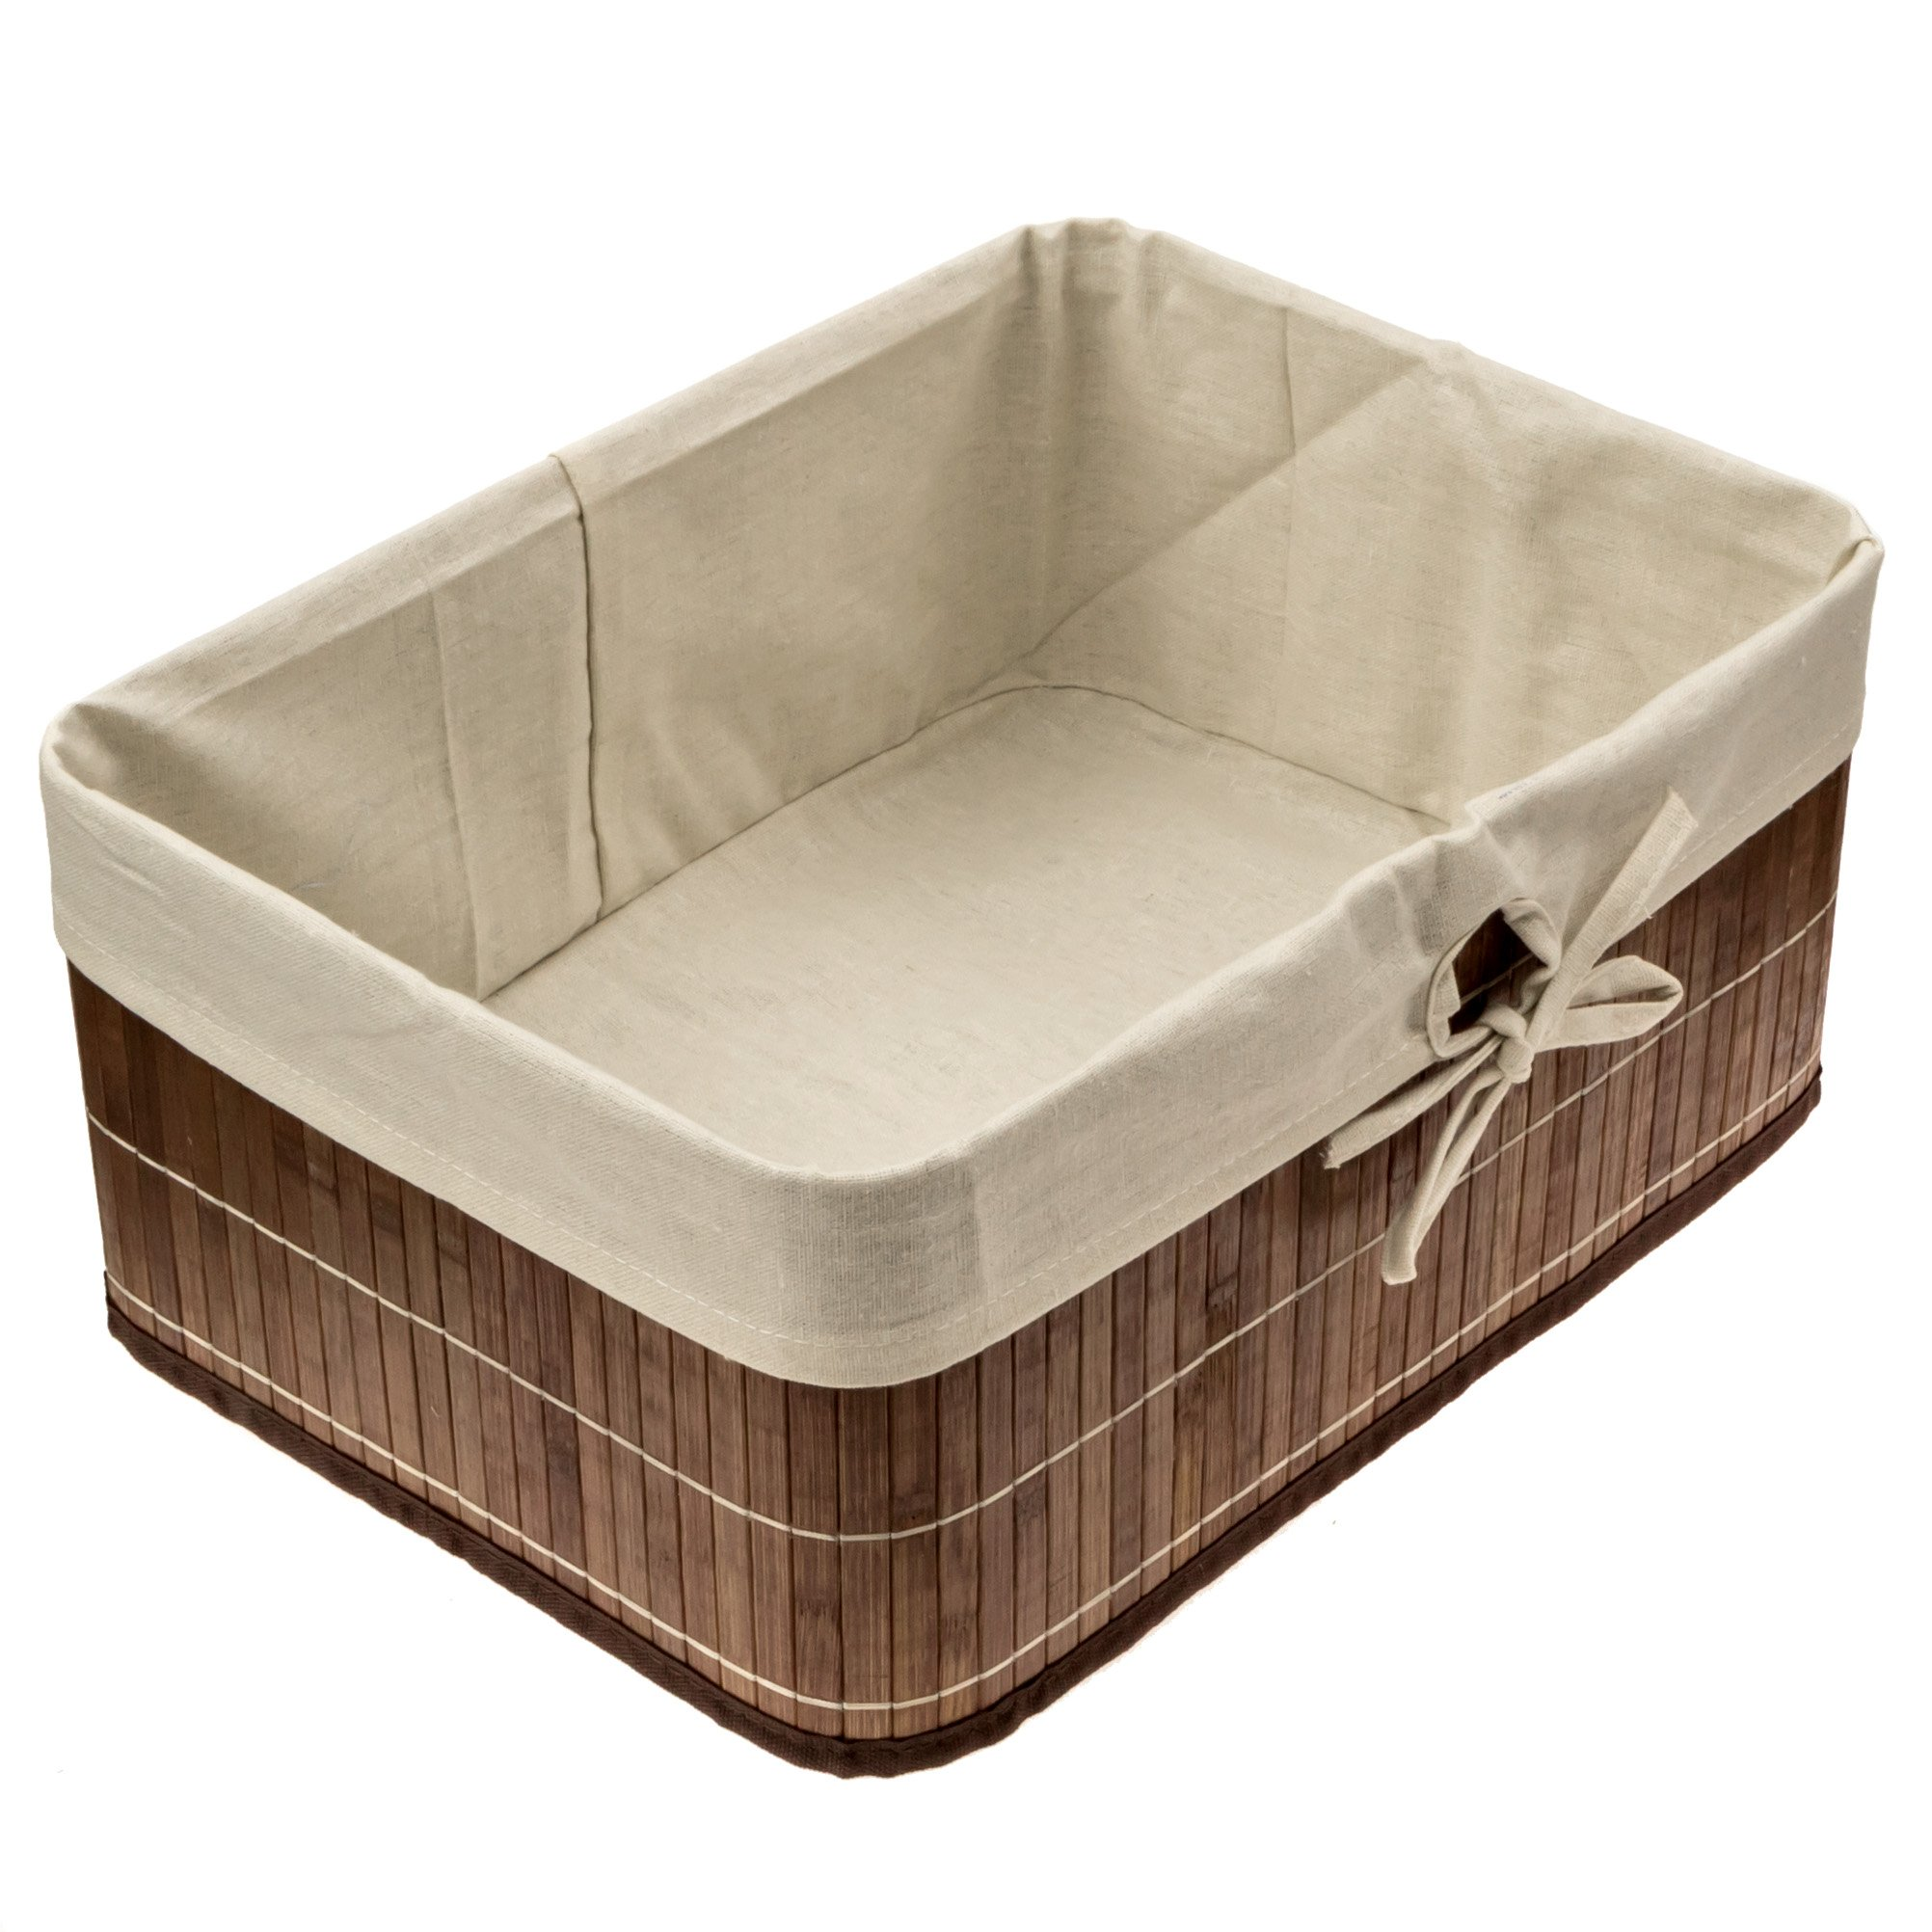 EarlyWorld Bamboo Storage Basket. Round Cornered, Dark Wood Tones With Cloth Liner